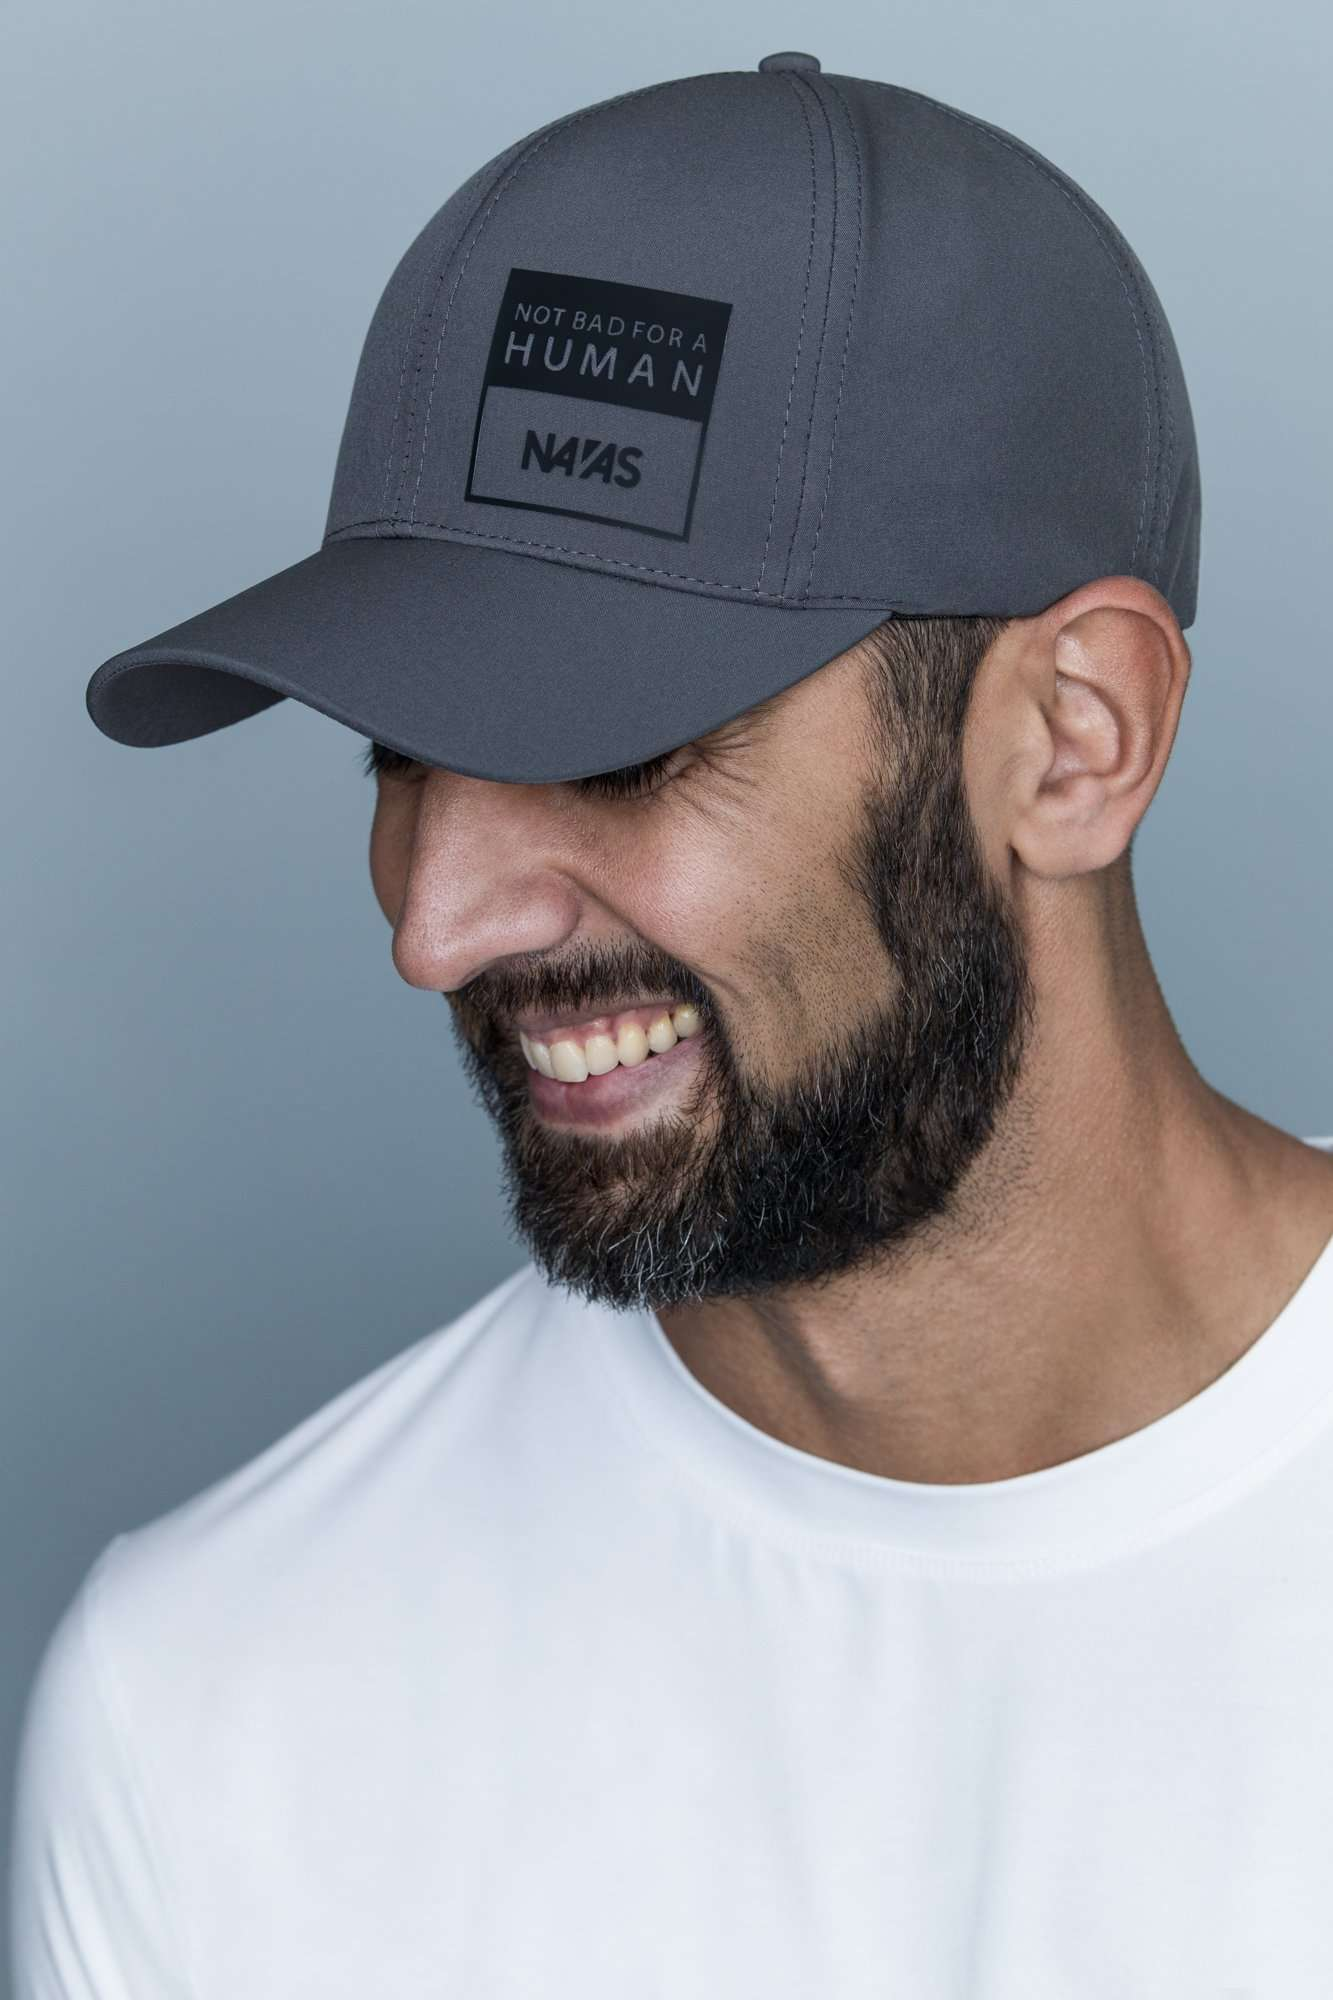 The Navas Lab V3 Hat in grey. A flexfit baseball cap with precurved visor for everyday.